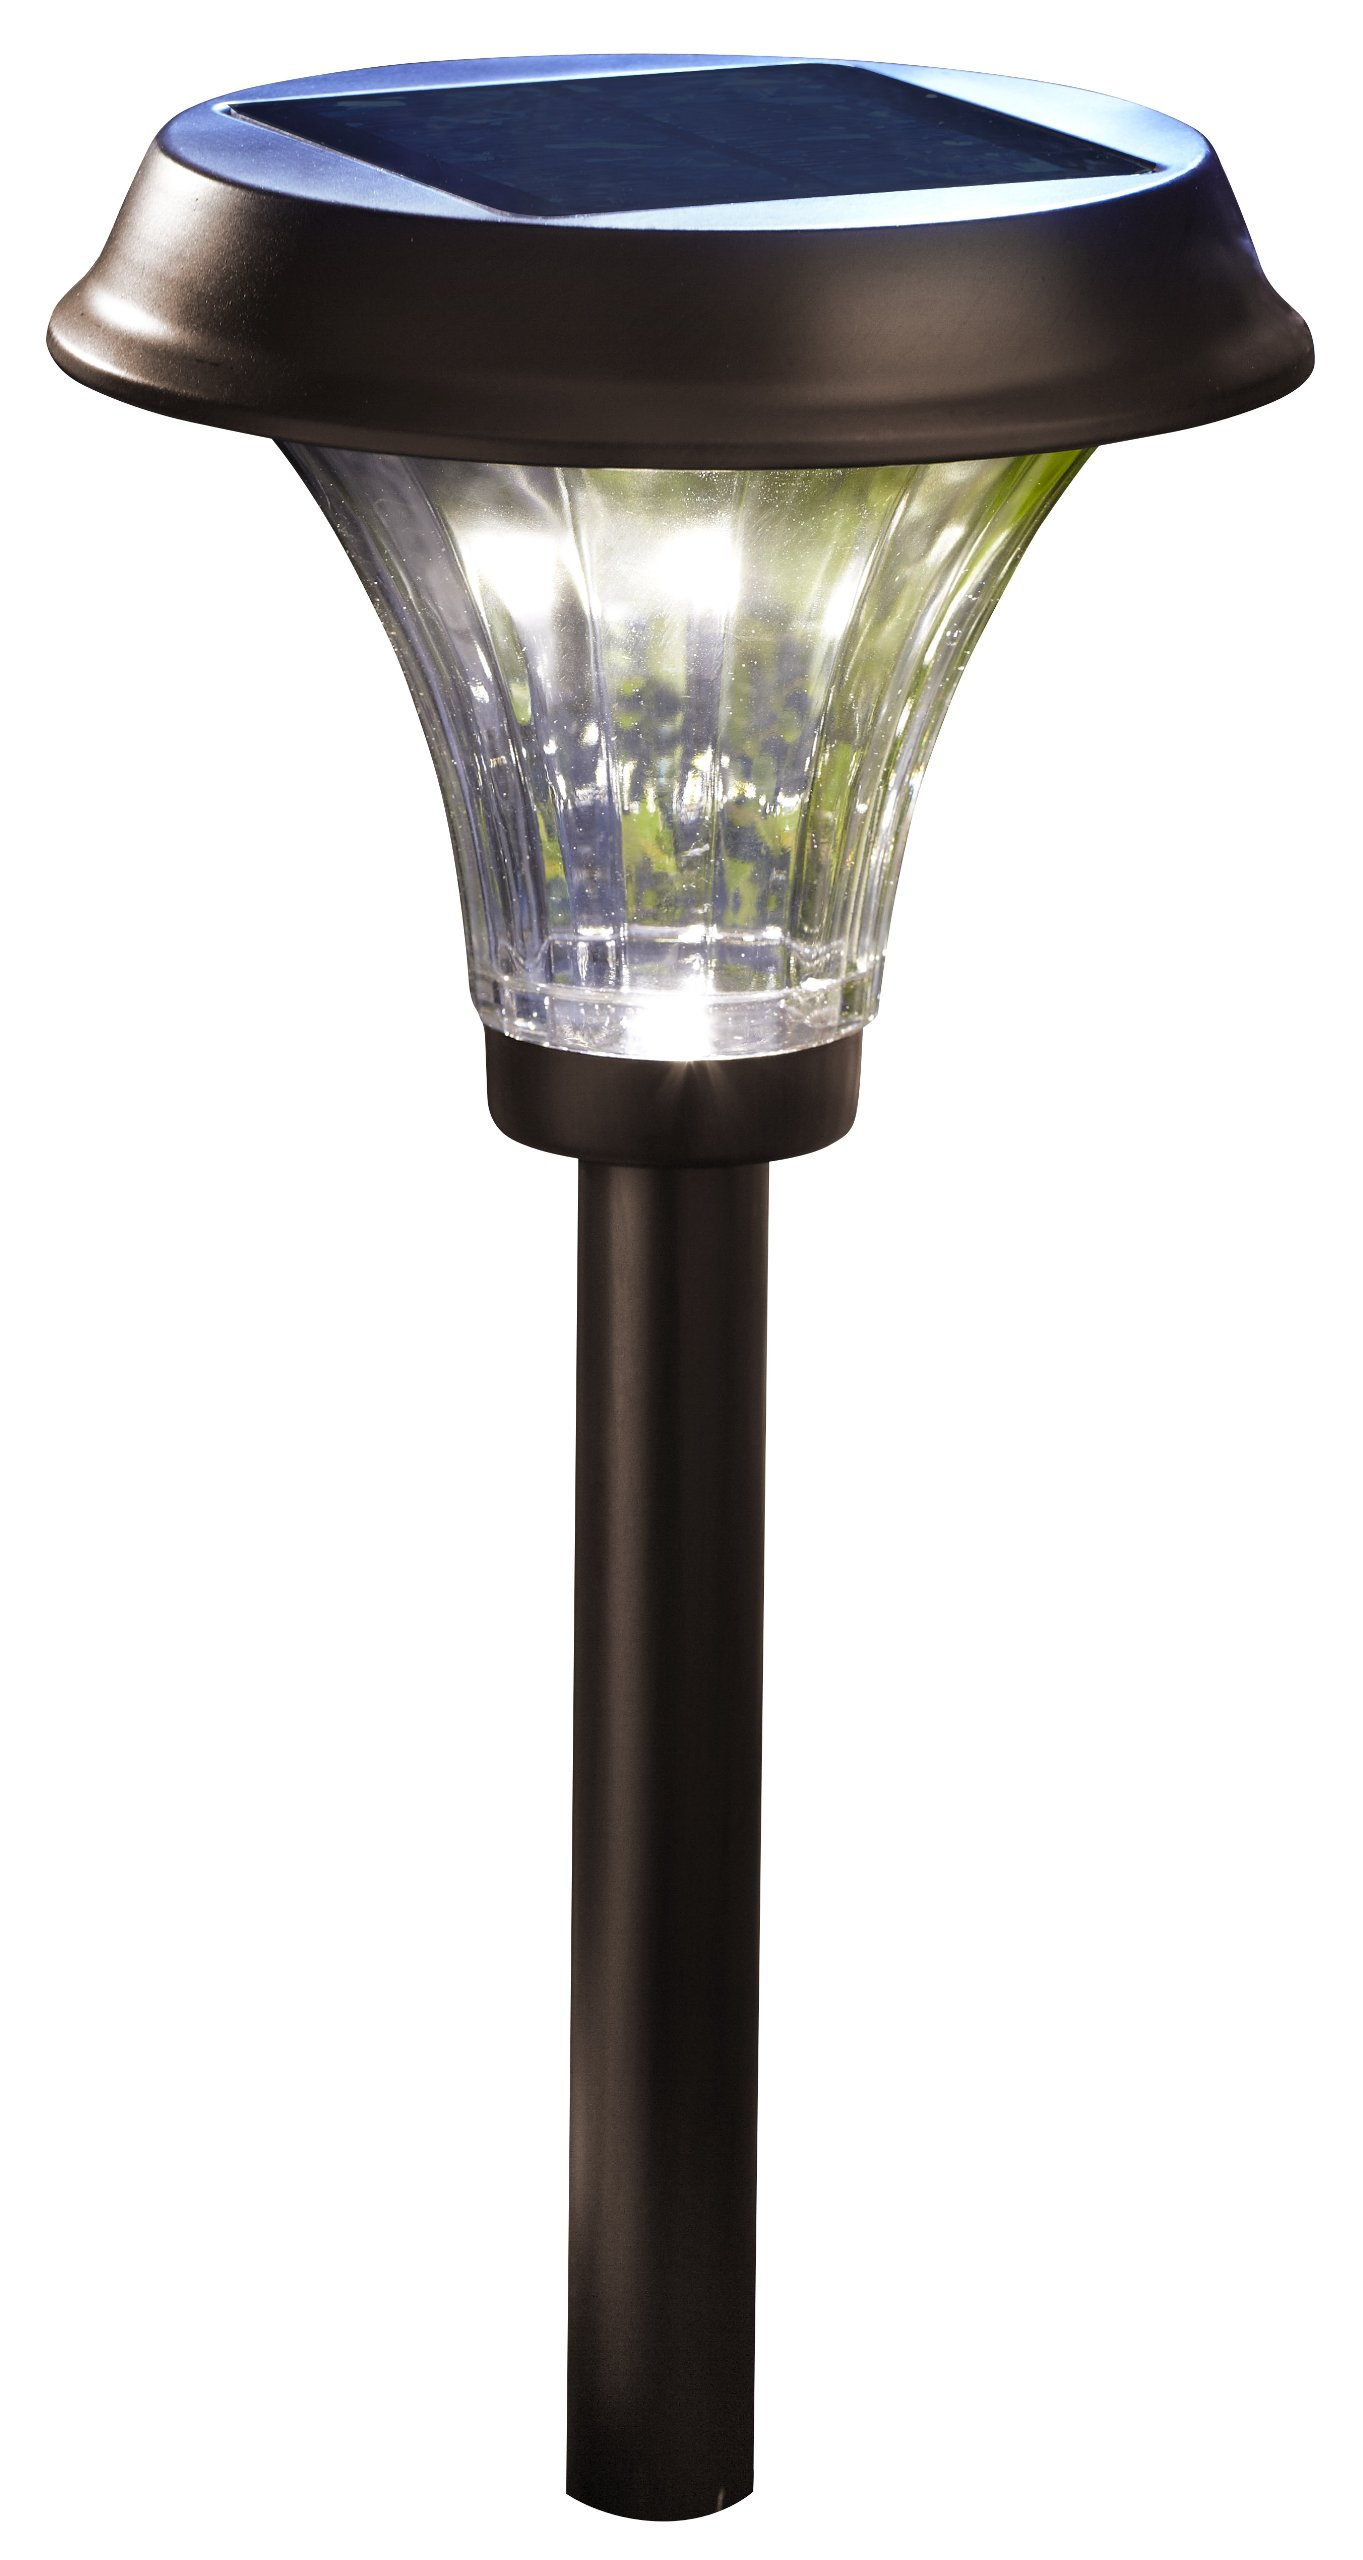 Moonrays 91754 Richmond Solar LED Metal Path Light, Rubbed Bronze (Pack of 2) by Moonrays (Image #1)